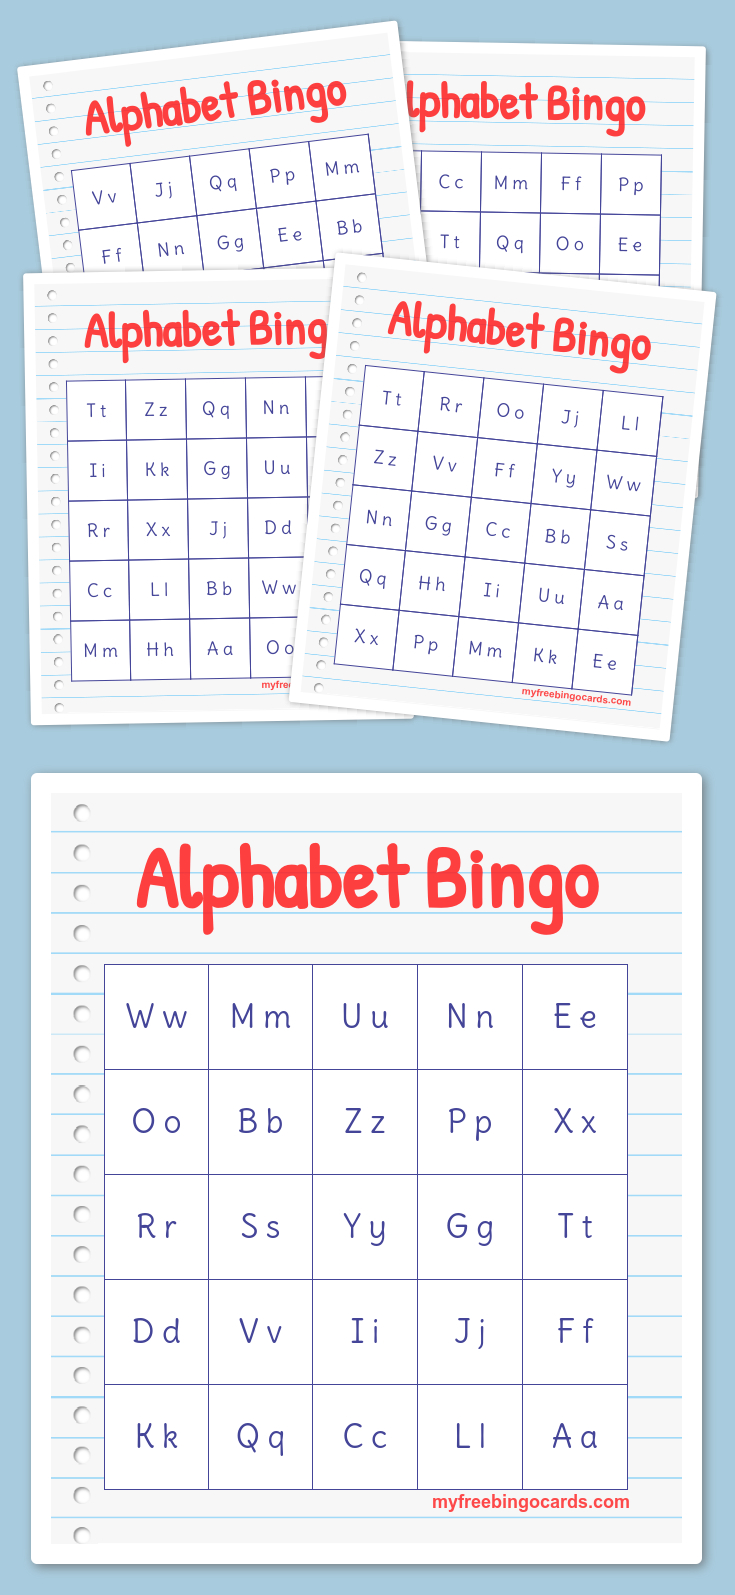 Free Printable Bingo Cards | I Can Read | Free Printable Bingo Cards - Free Printable Bingo Cards With Numbers